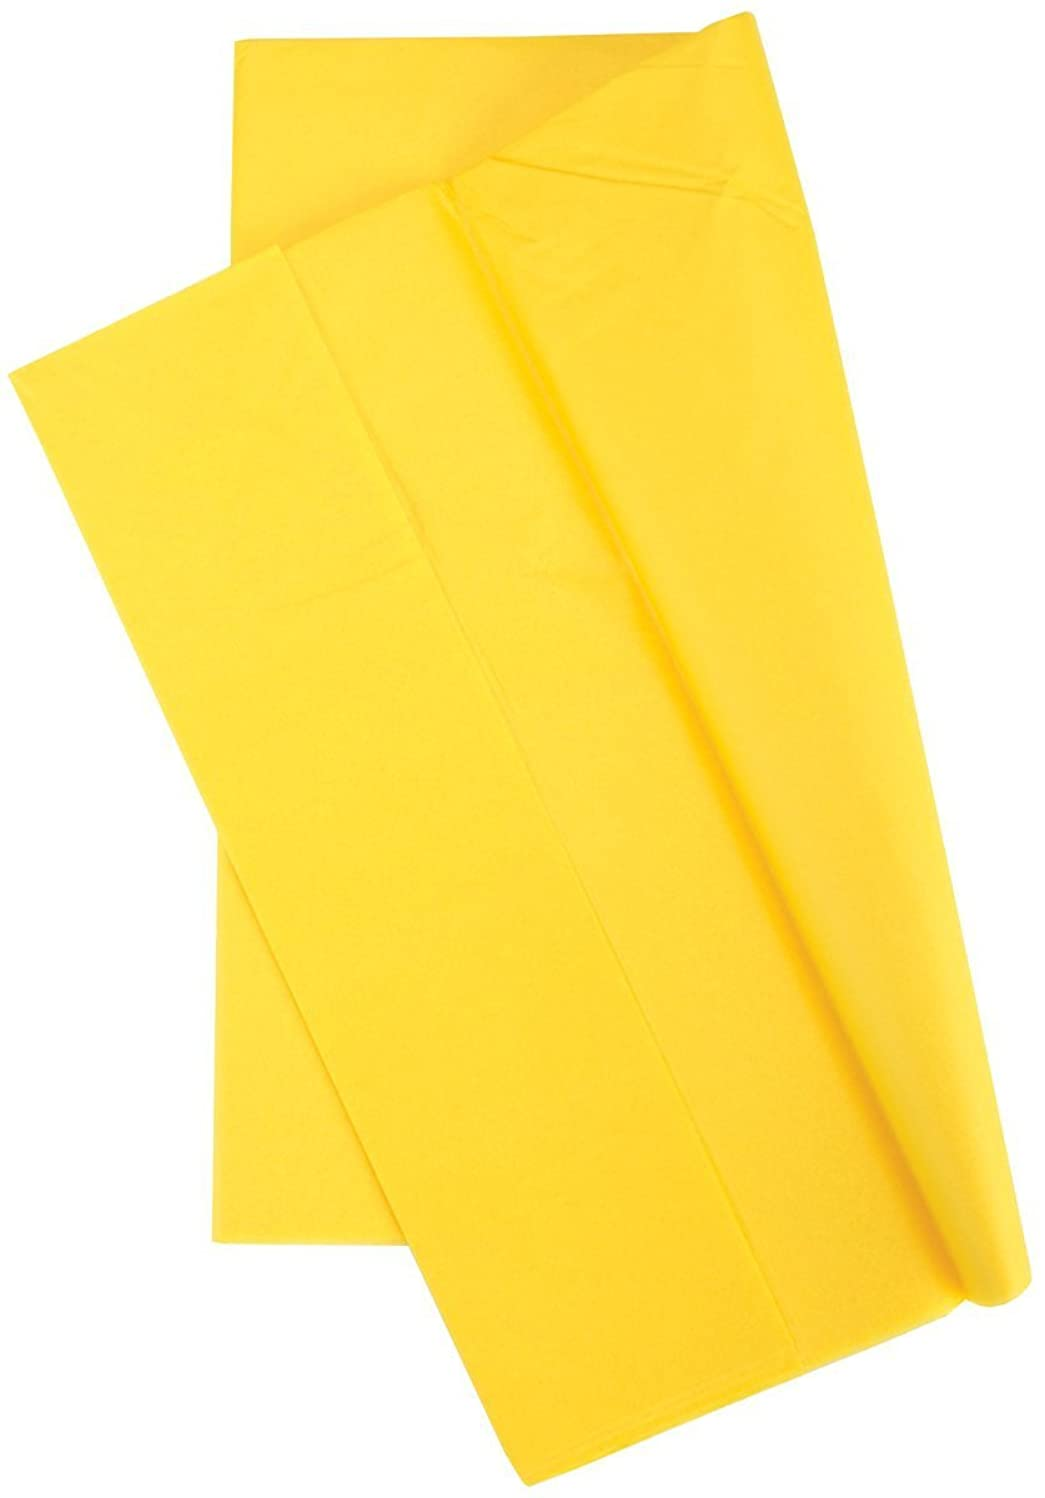 Cindus Tissue Wrap, 20 by 20-Inch, Canary Yellow 10/Pkg - Set of 4